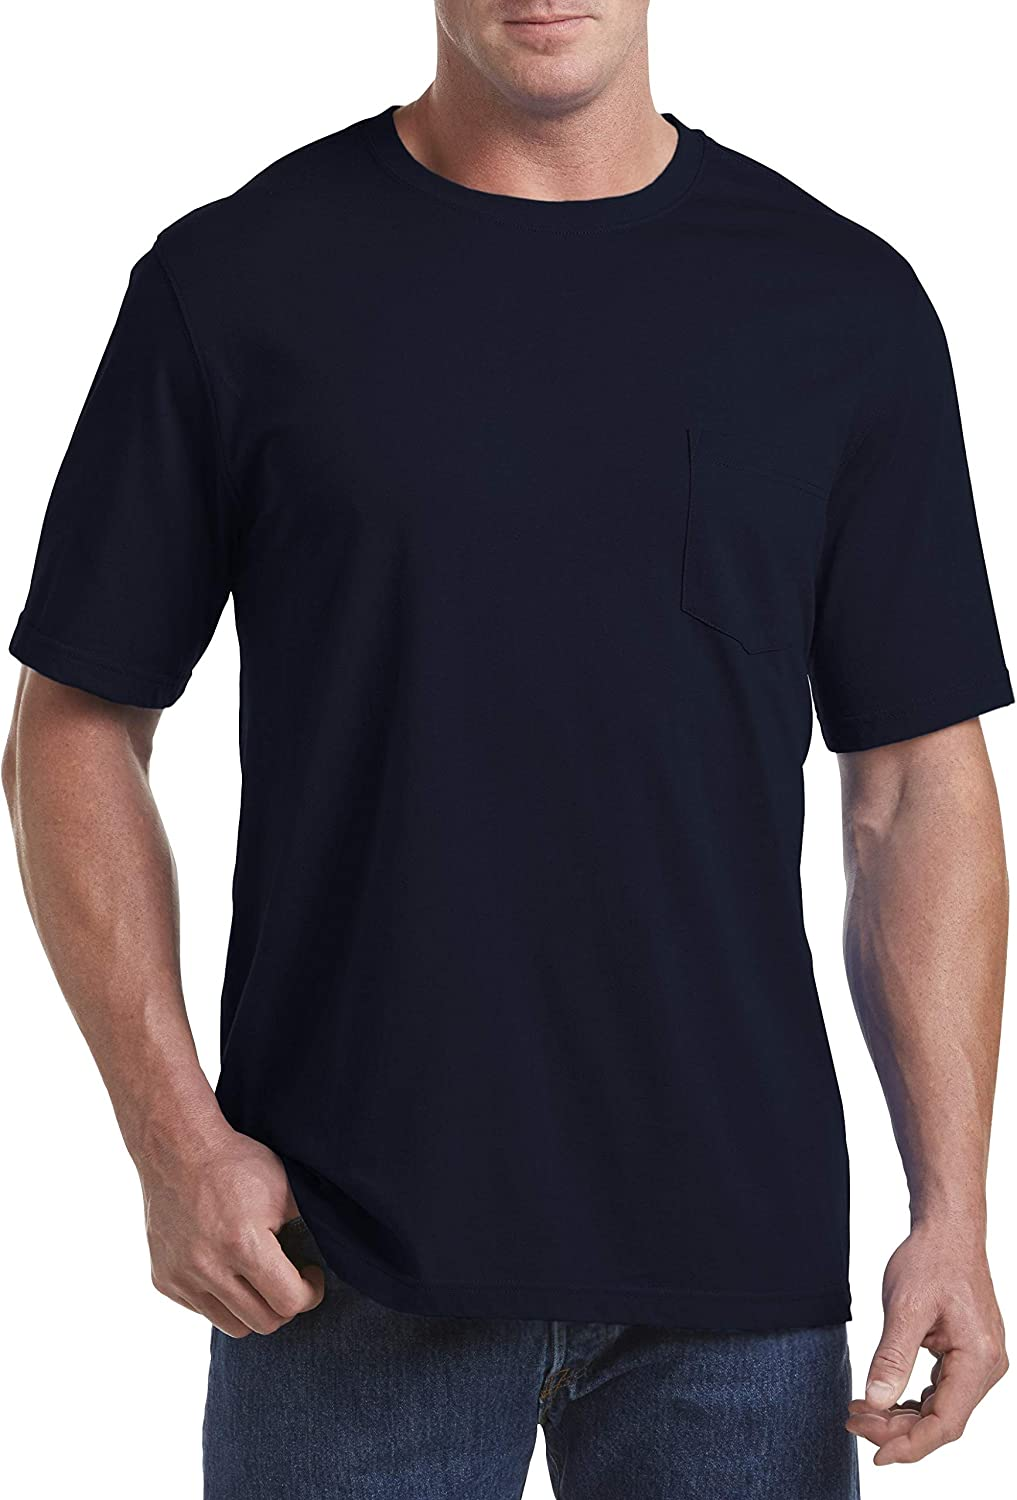 Harbor Bay by DXL Big and Tall Moisture-Wicking Pocket T-Shirt